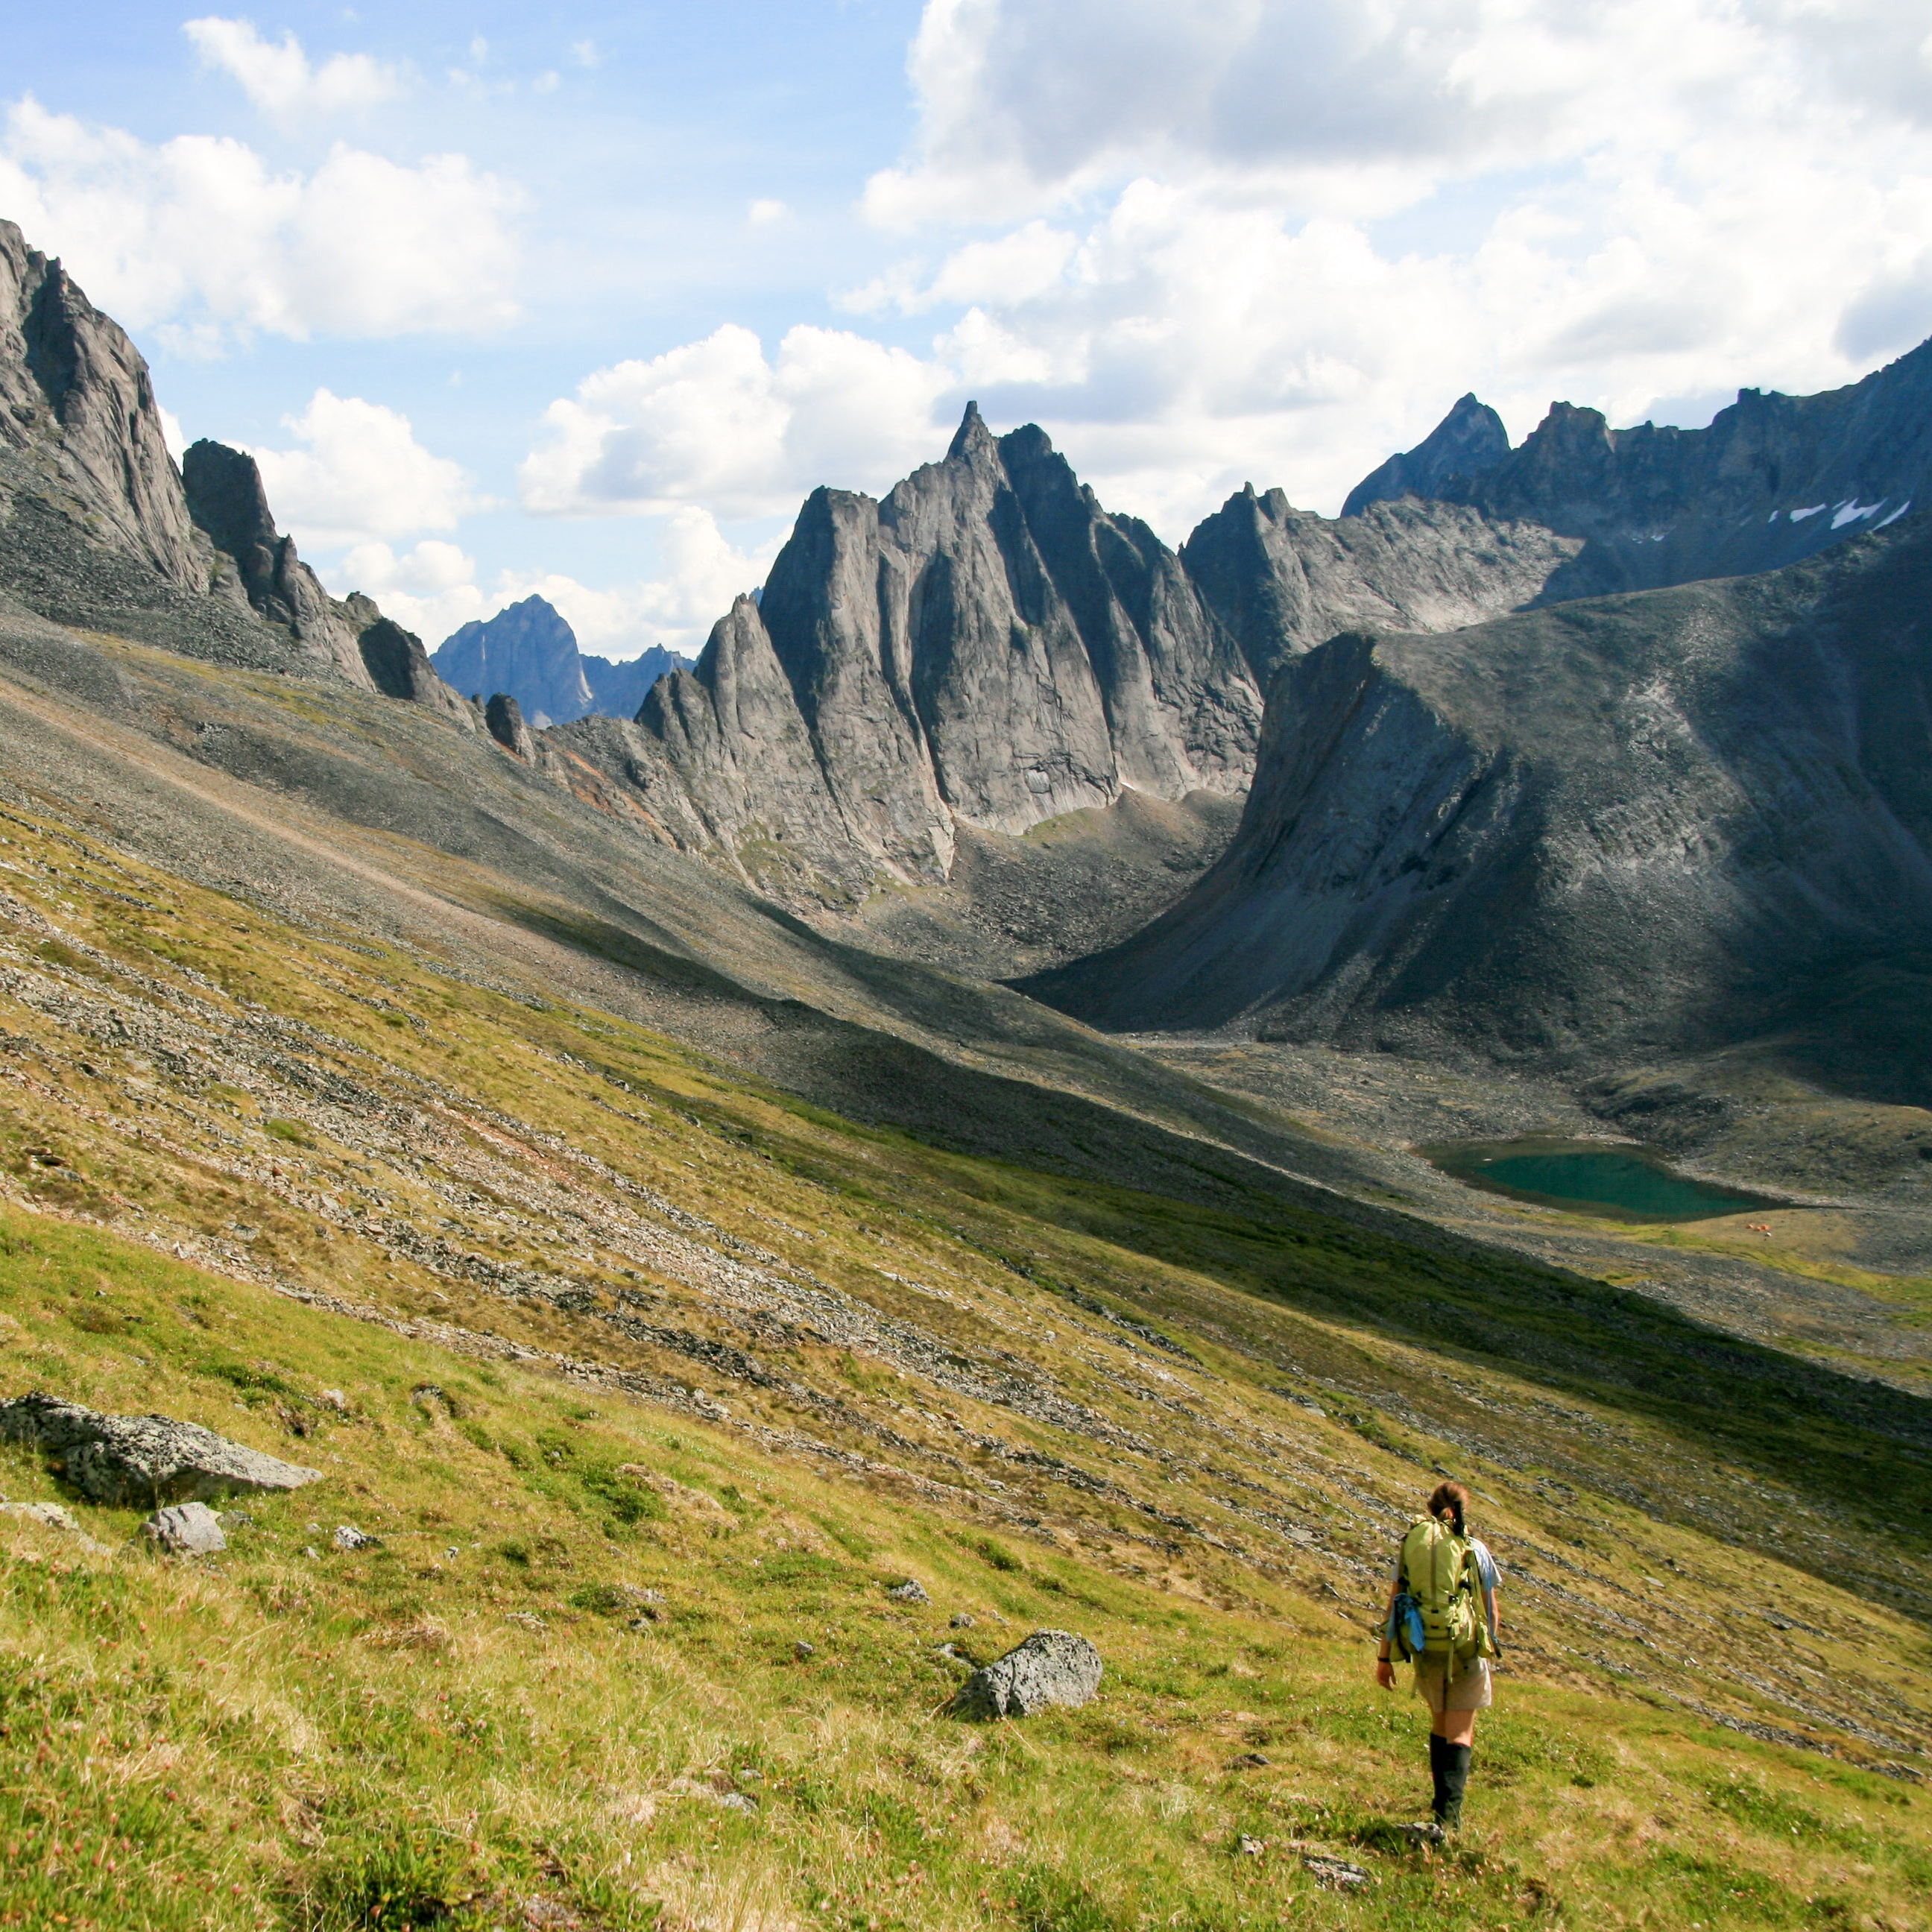 Case Study: Finding a Sick Person High in the Mountains